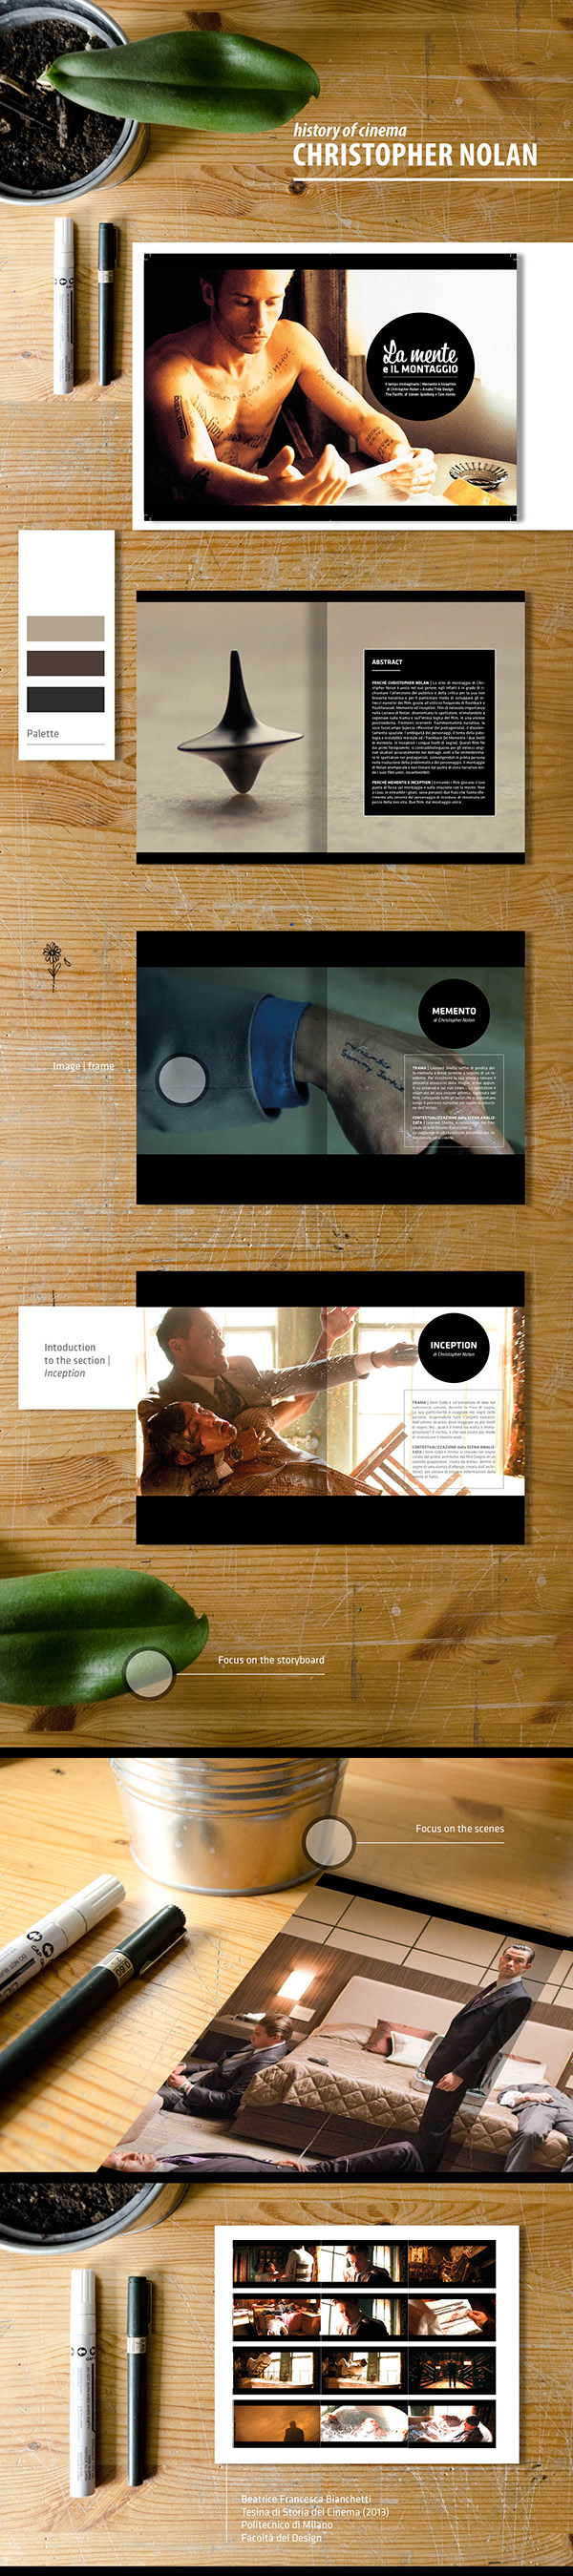 Thesis Film History Editorial Product On Behance